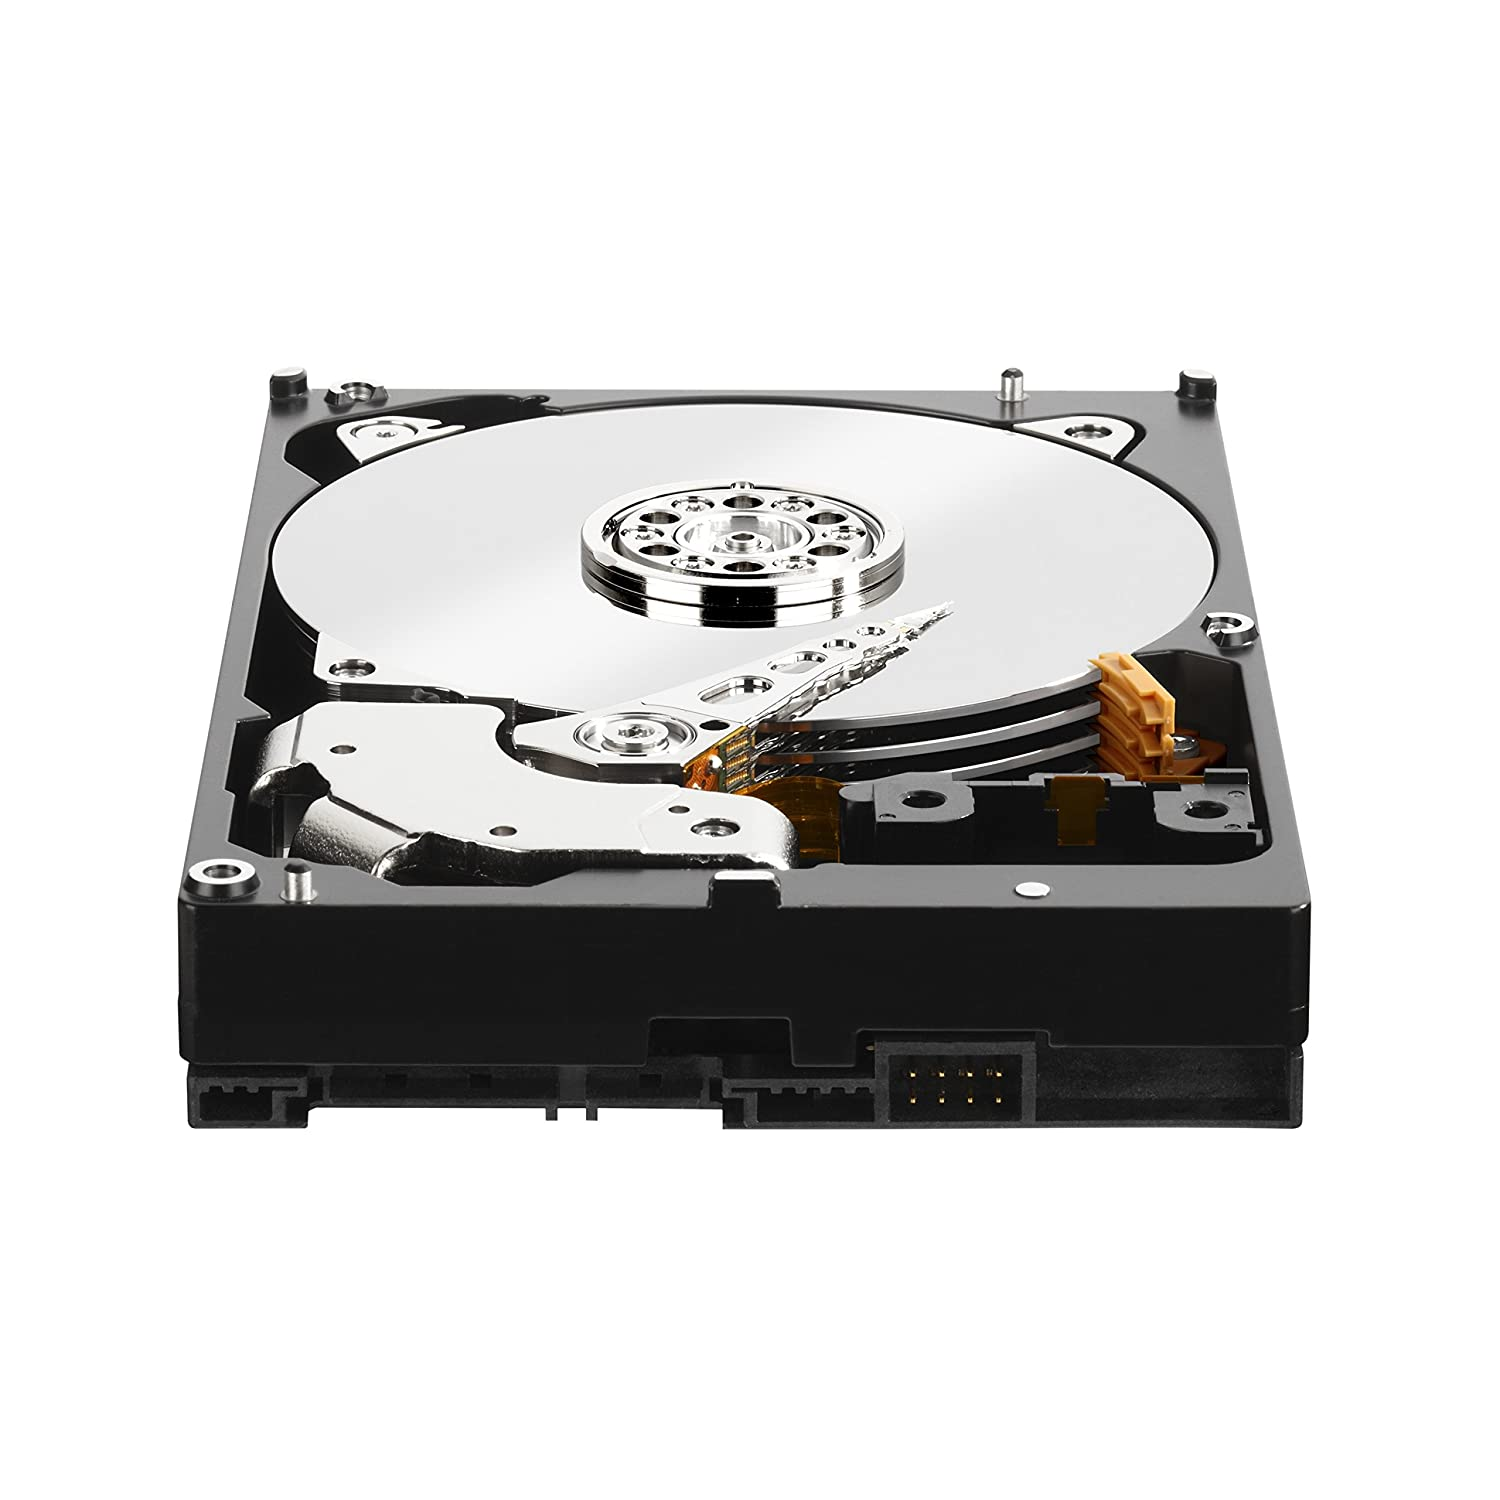 buffer 64 MB WD SE 4 TB 7200 RPM 3.5-inch SATA-600 internal Hard drive